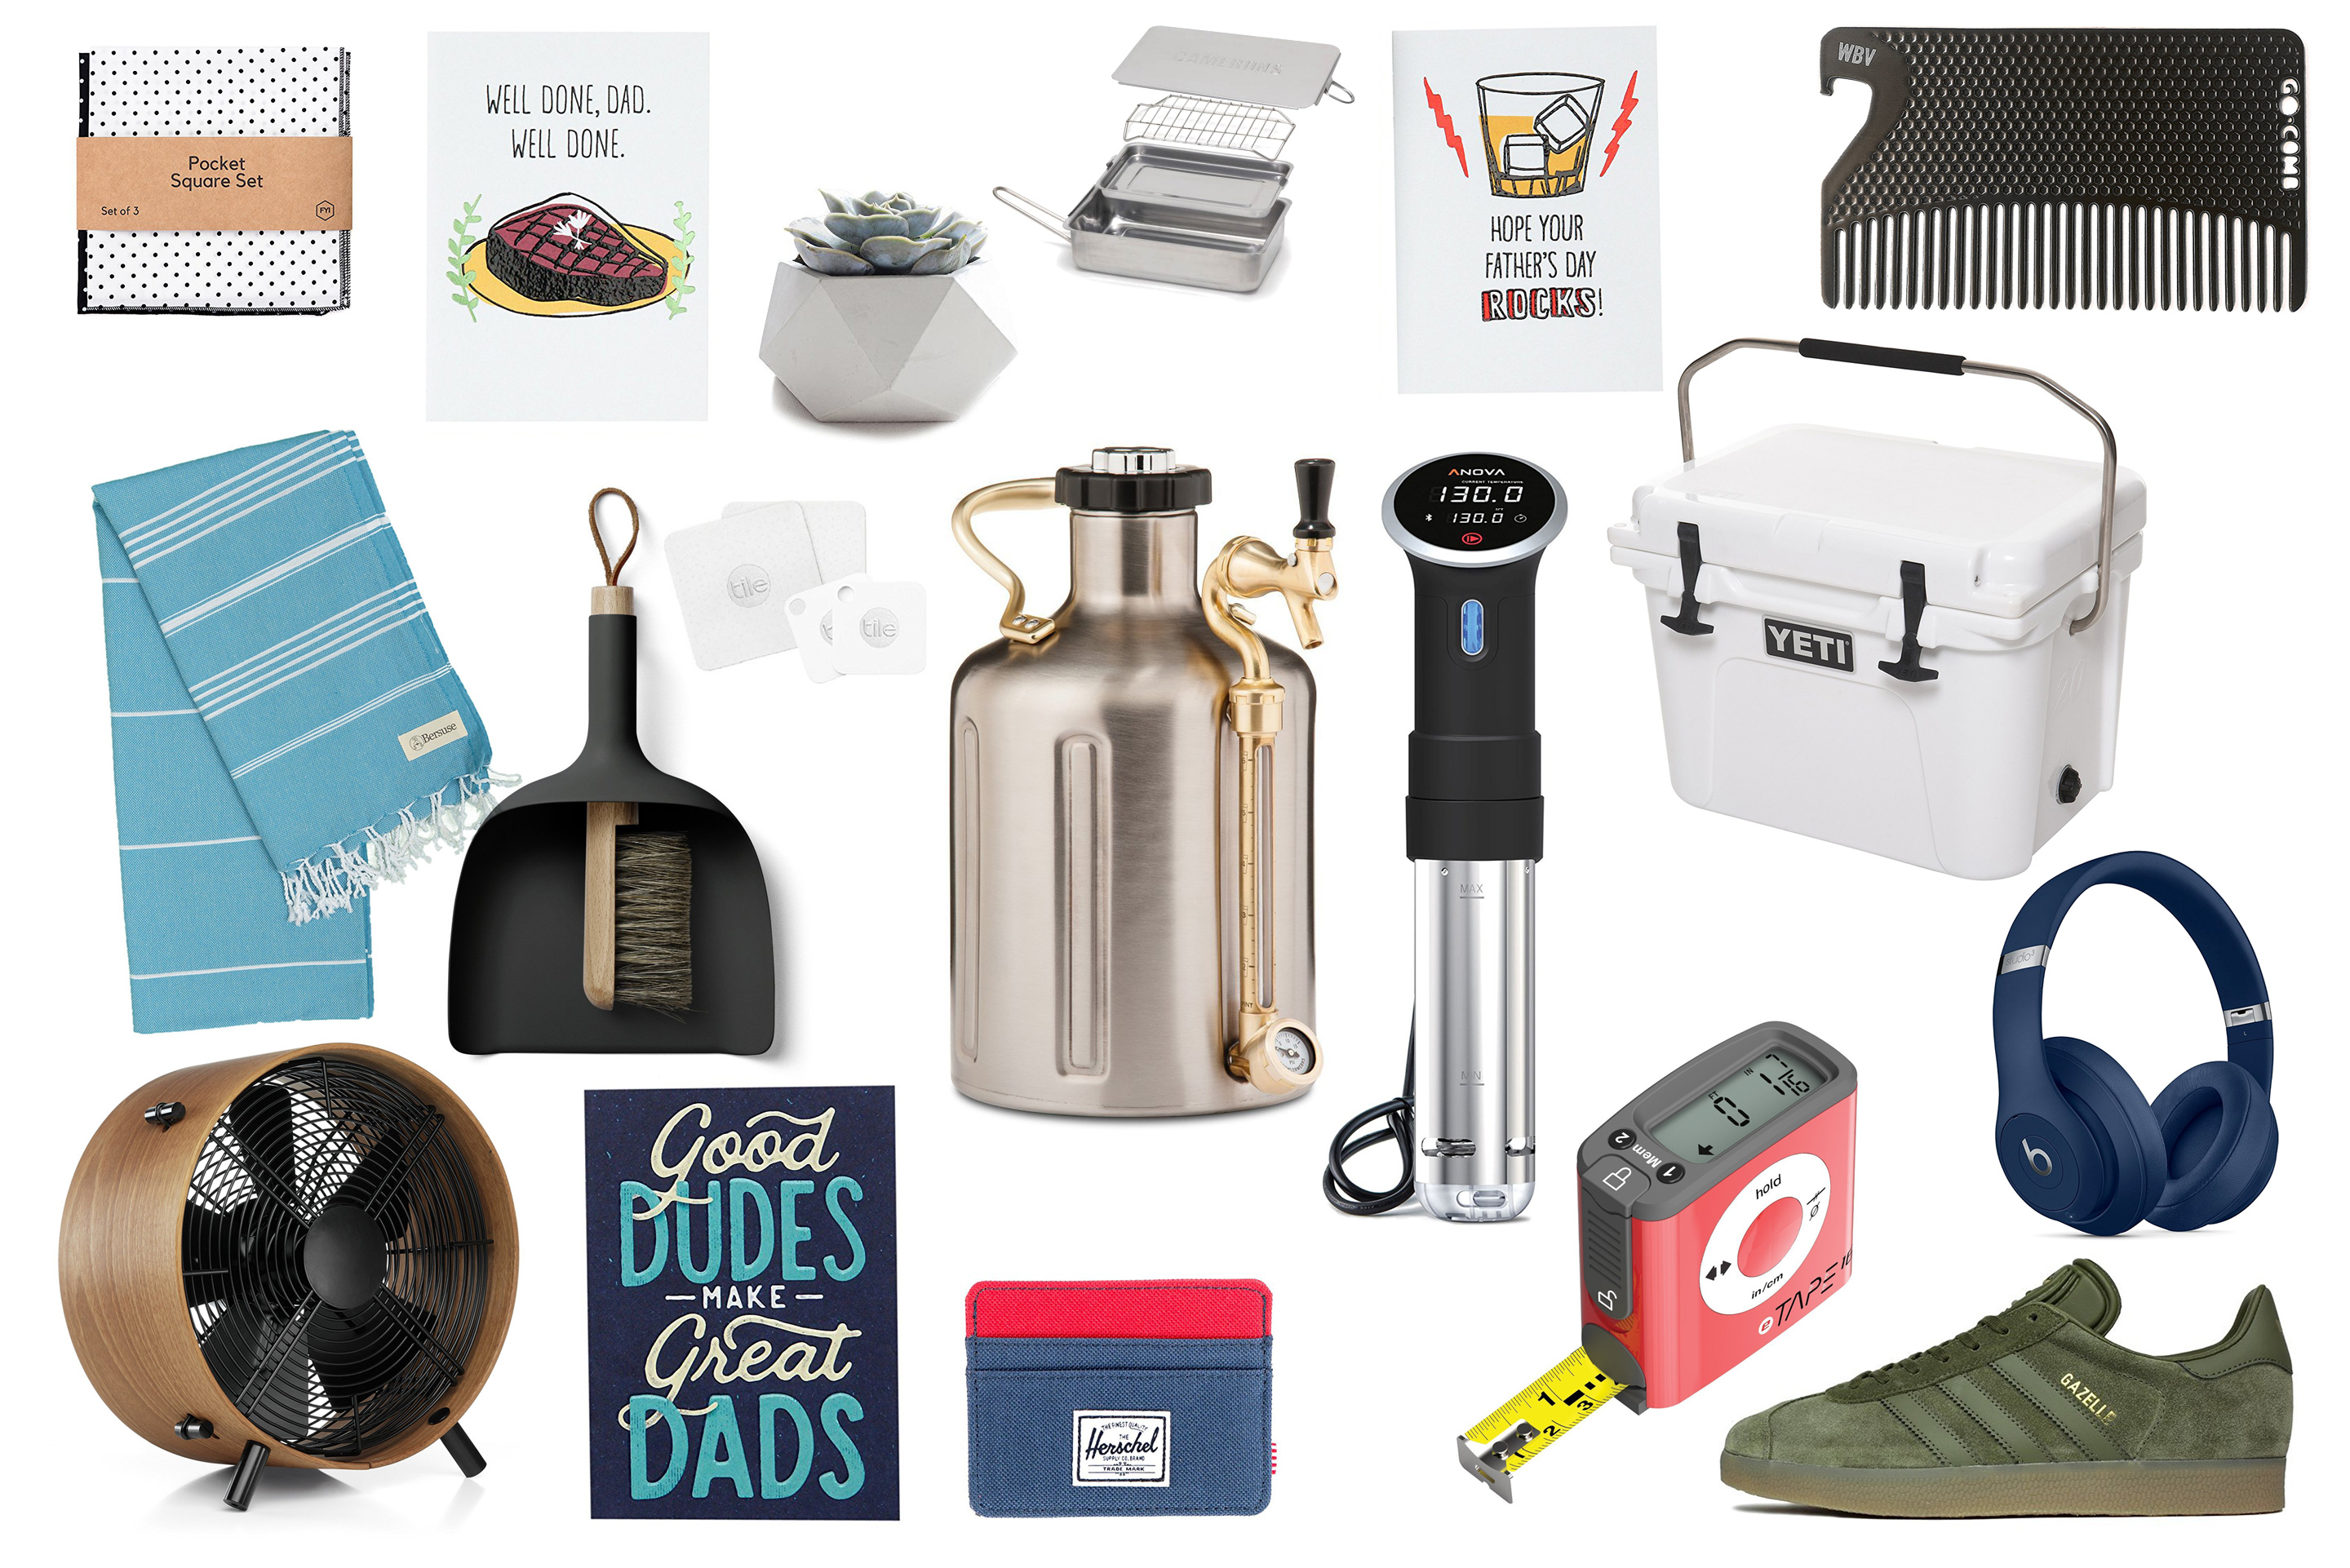 It S A Father Day Gift Guide Are You Looking For The Best Present Dads In Your Life Maybe Baby Daddy Dad Law